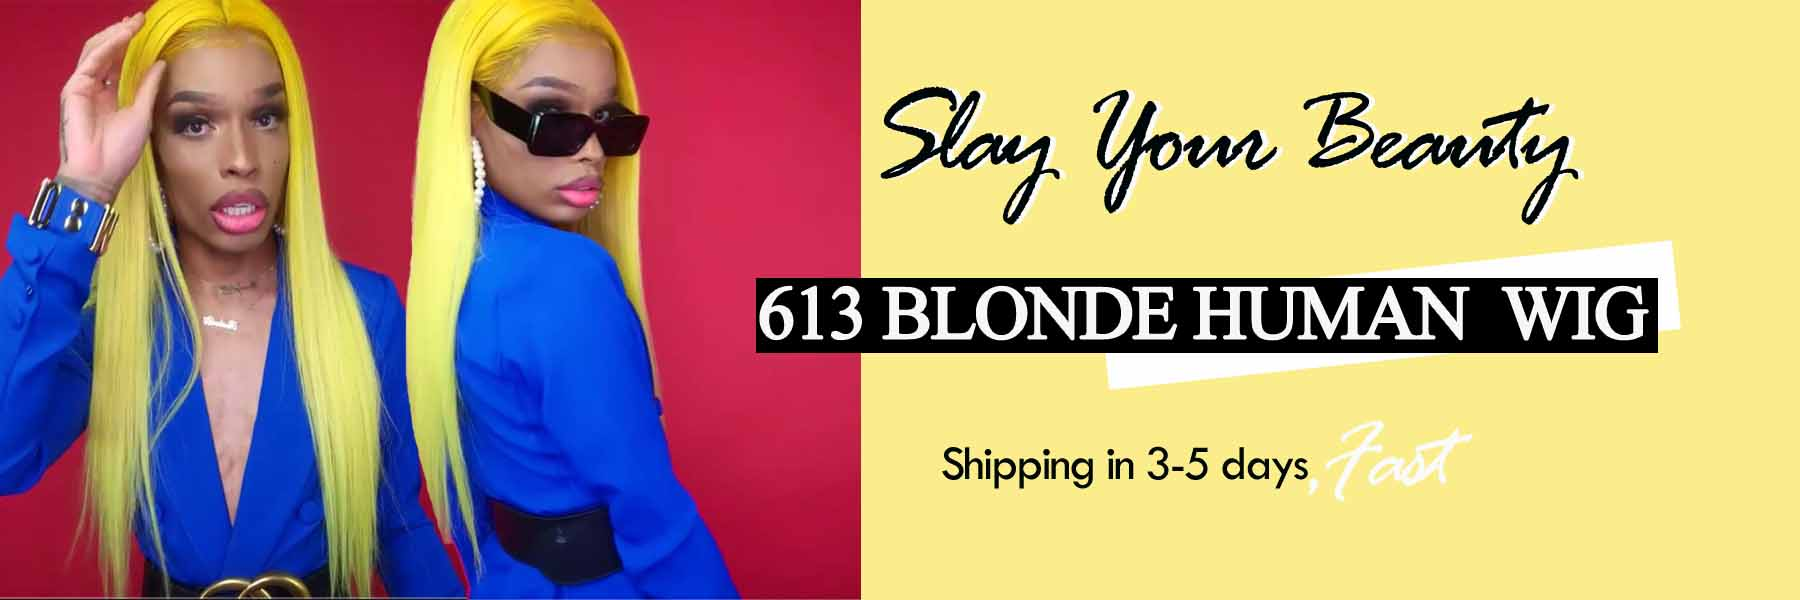 BLONDE HUMAN HAIR WIGS, 613 blonde wigs, blonde lace front human hair wigs